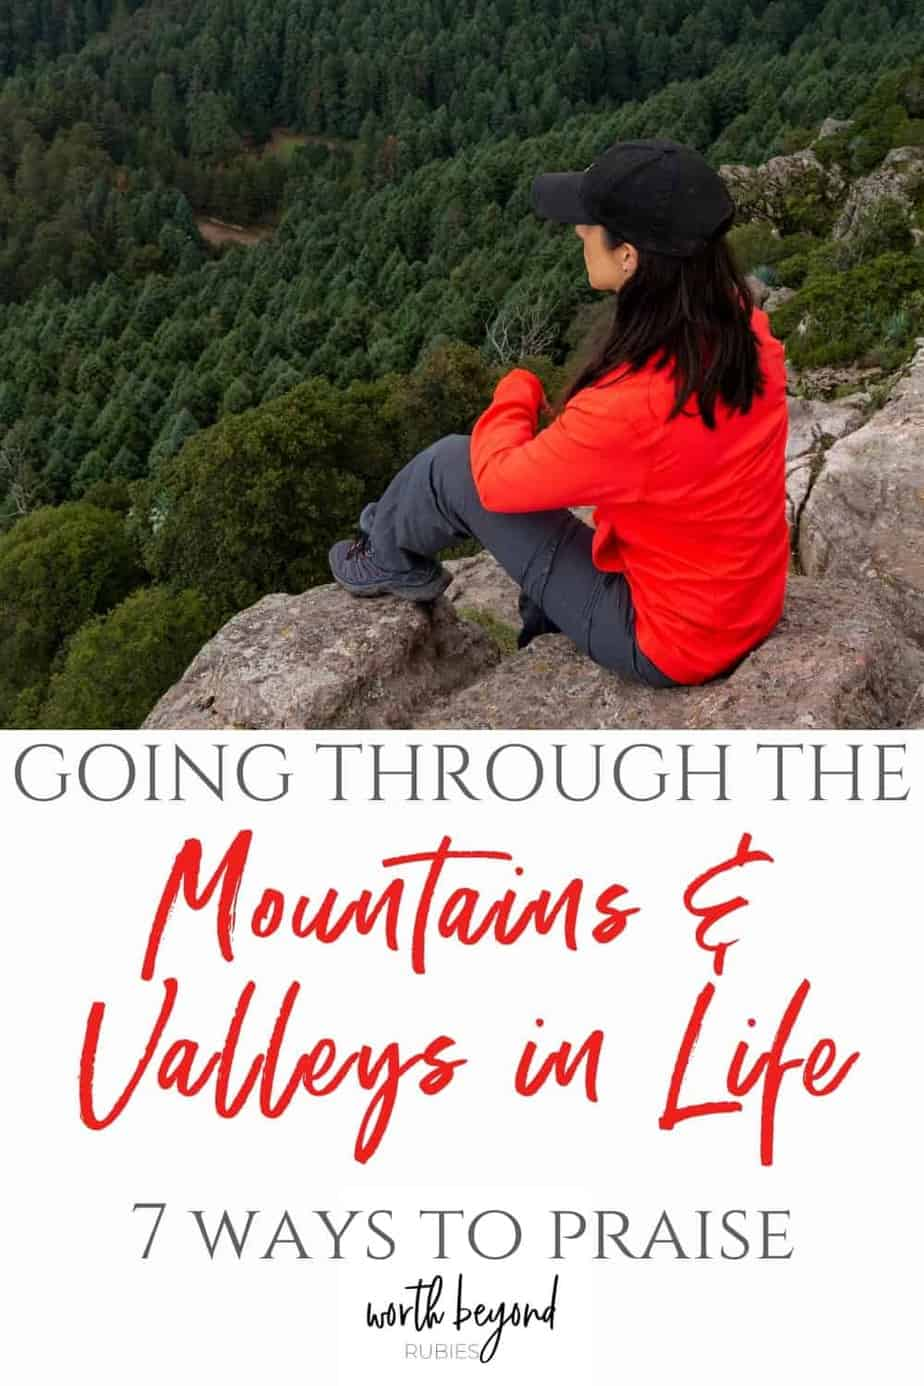 Woman in red shirt sitting on a mountain and text that says Going Through the Mountains and Valleys in Life - 7 Ways to Praise